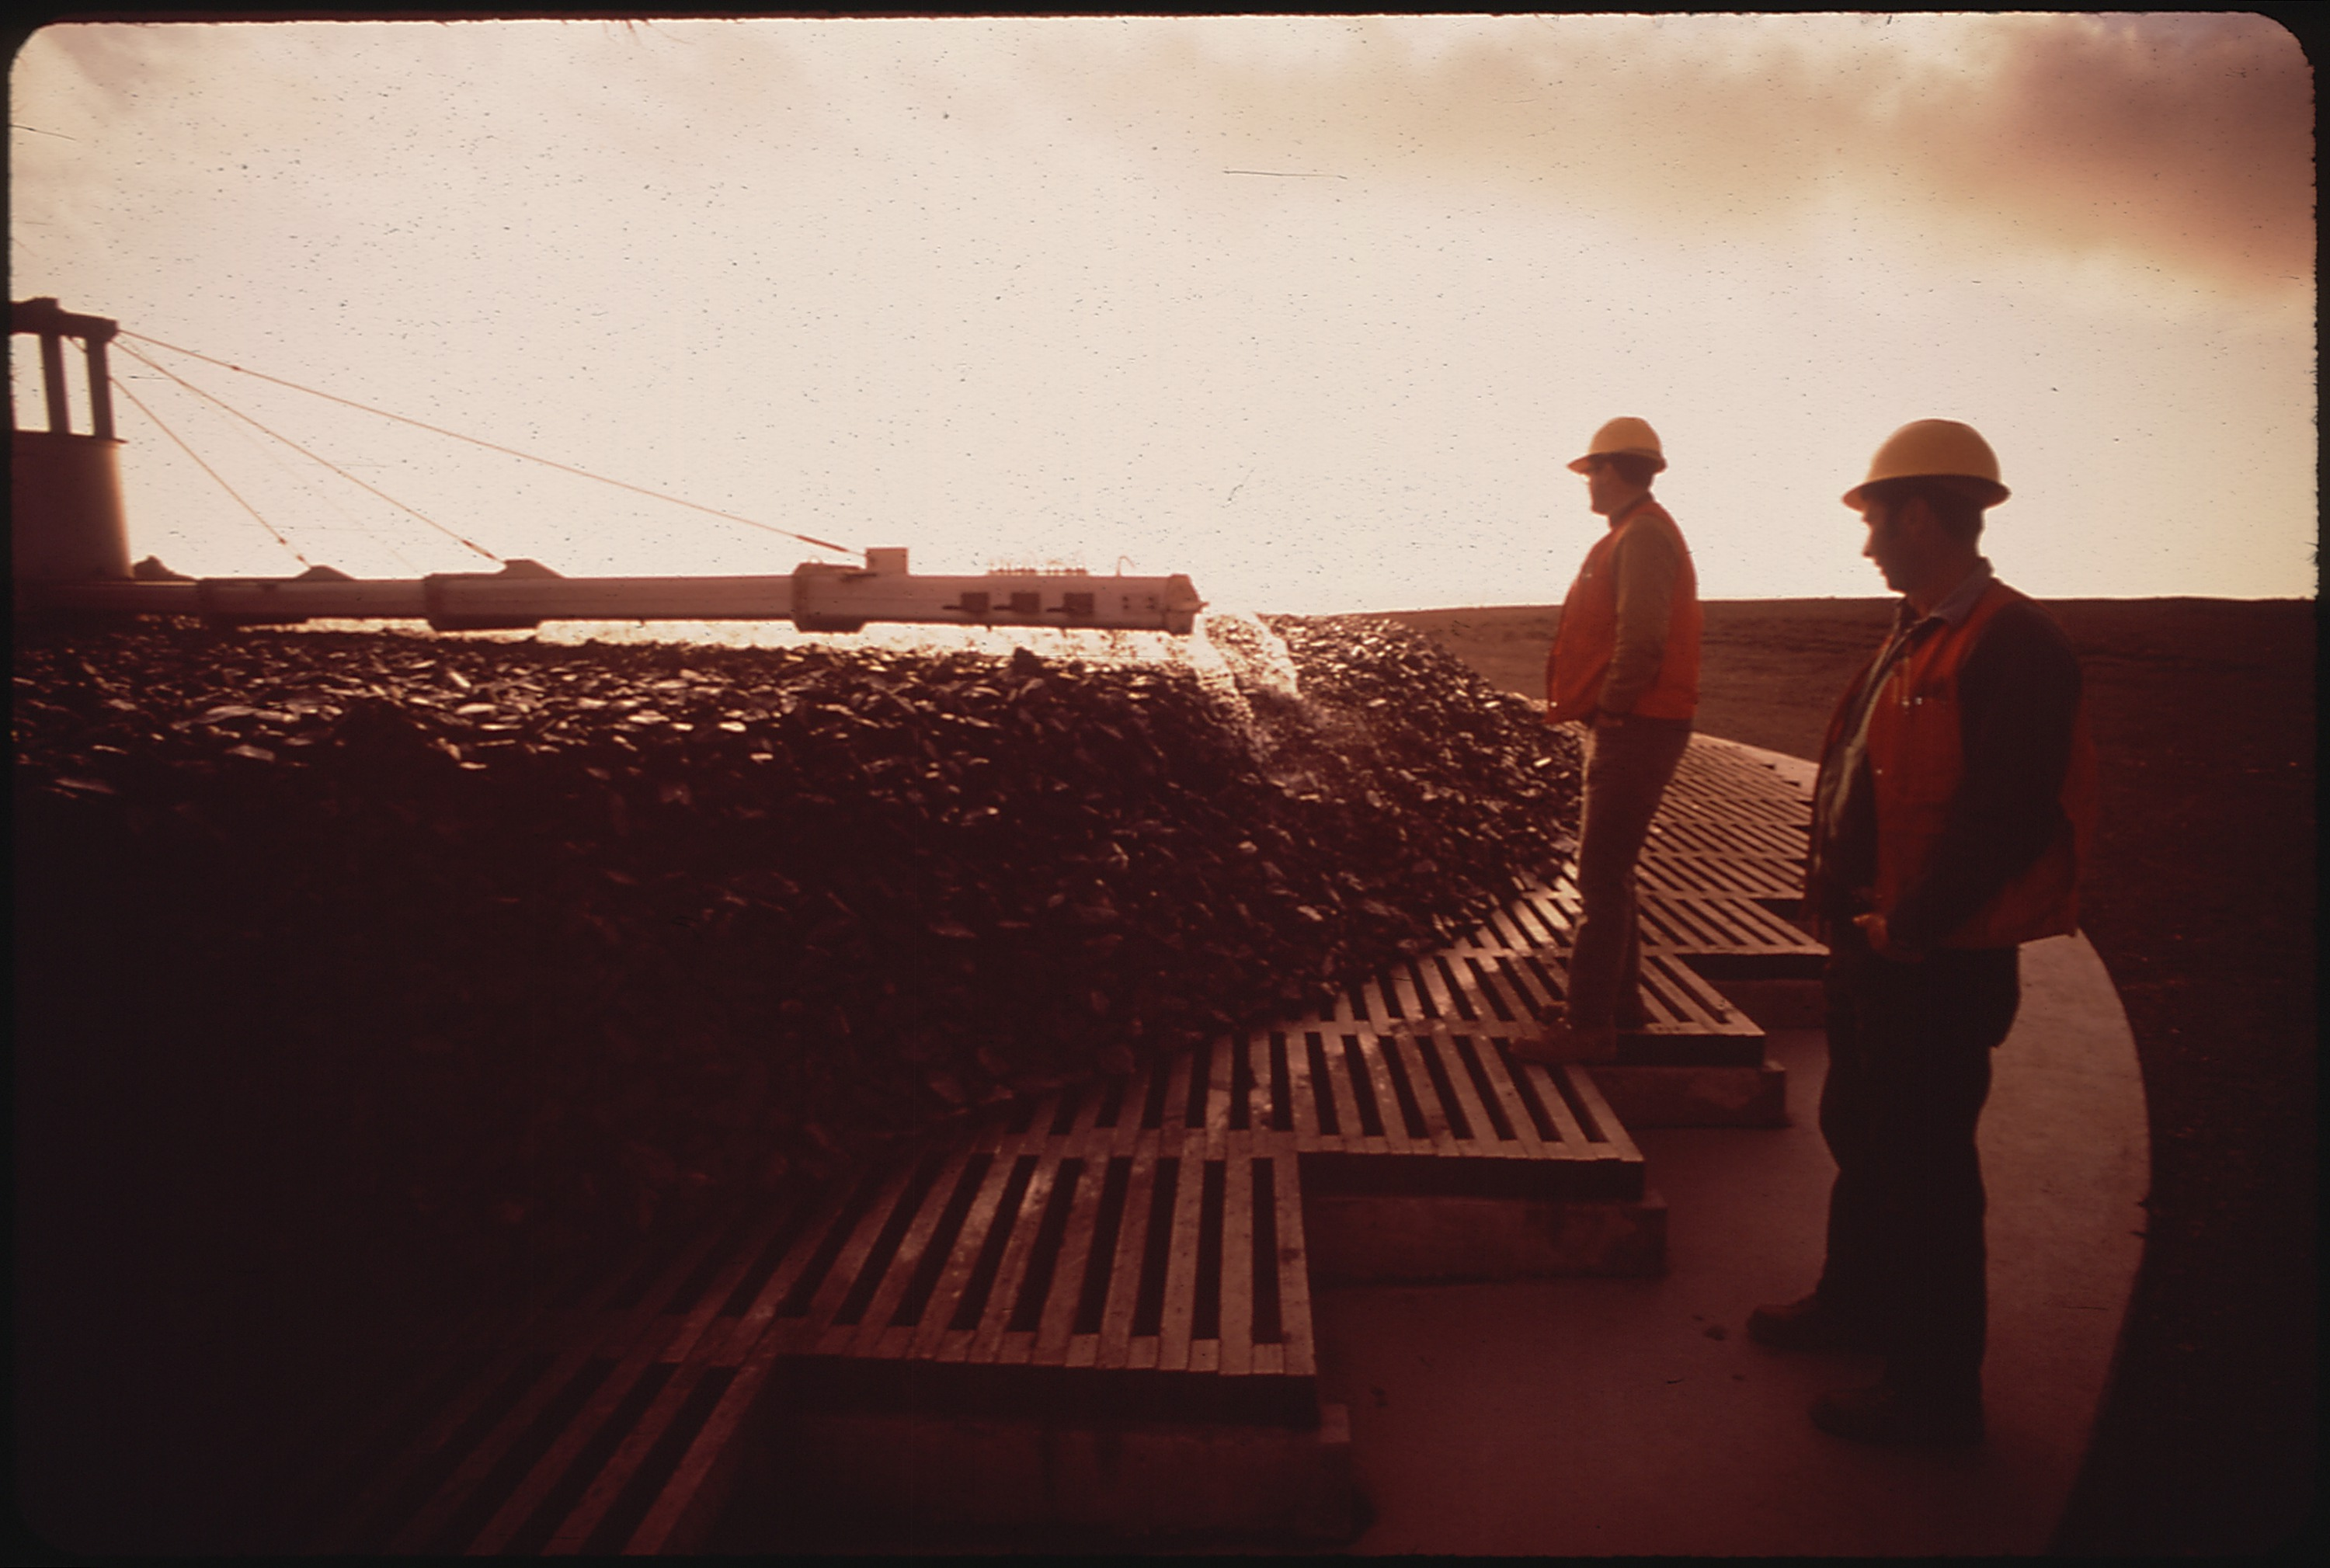 SEWAGE_TREATMENT_PLANT_AT_SUNSET._TWO_WORKERS_STAND_NEAR_ROCK_FILTER_-_NARA_-_542989